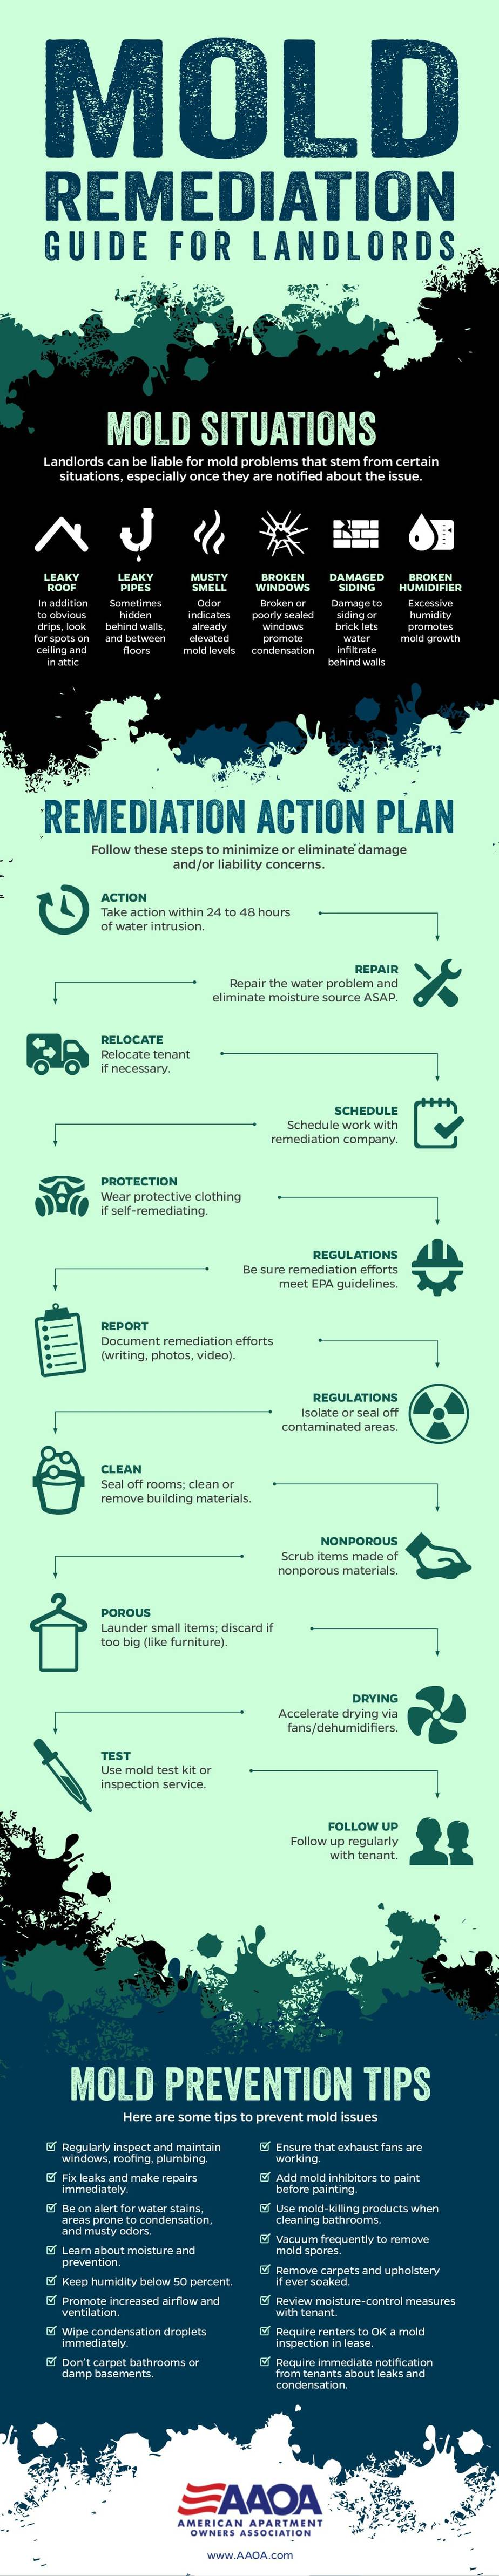 Infographic: Mold Remediation Guide